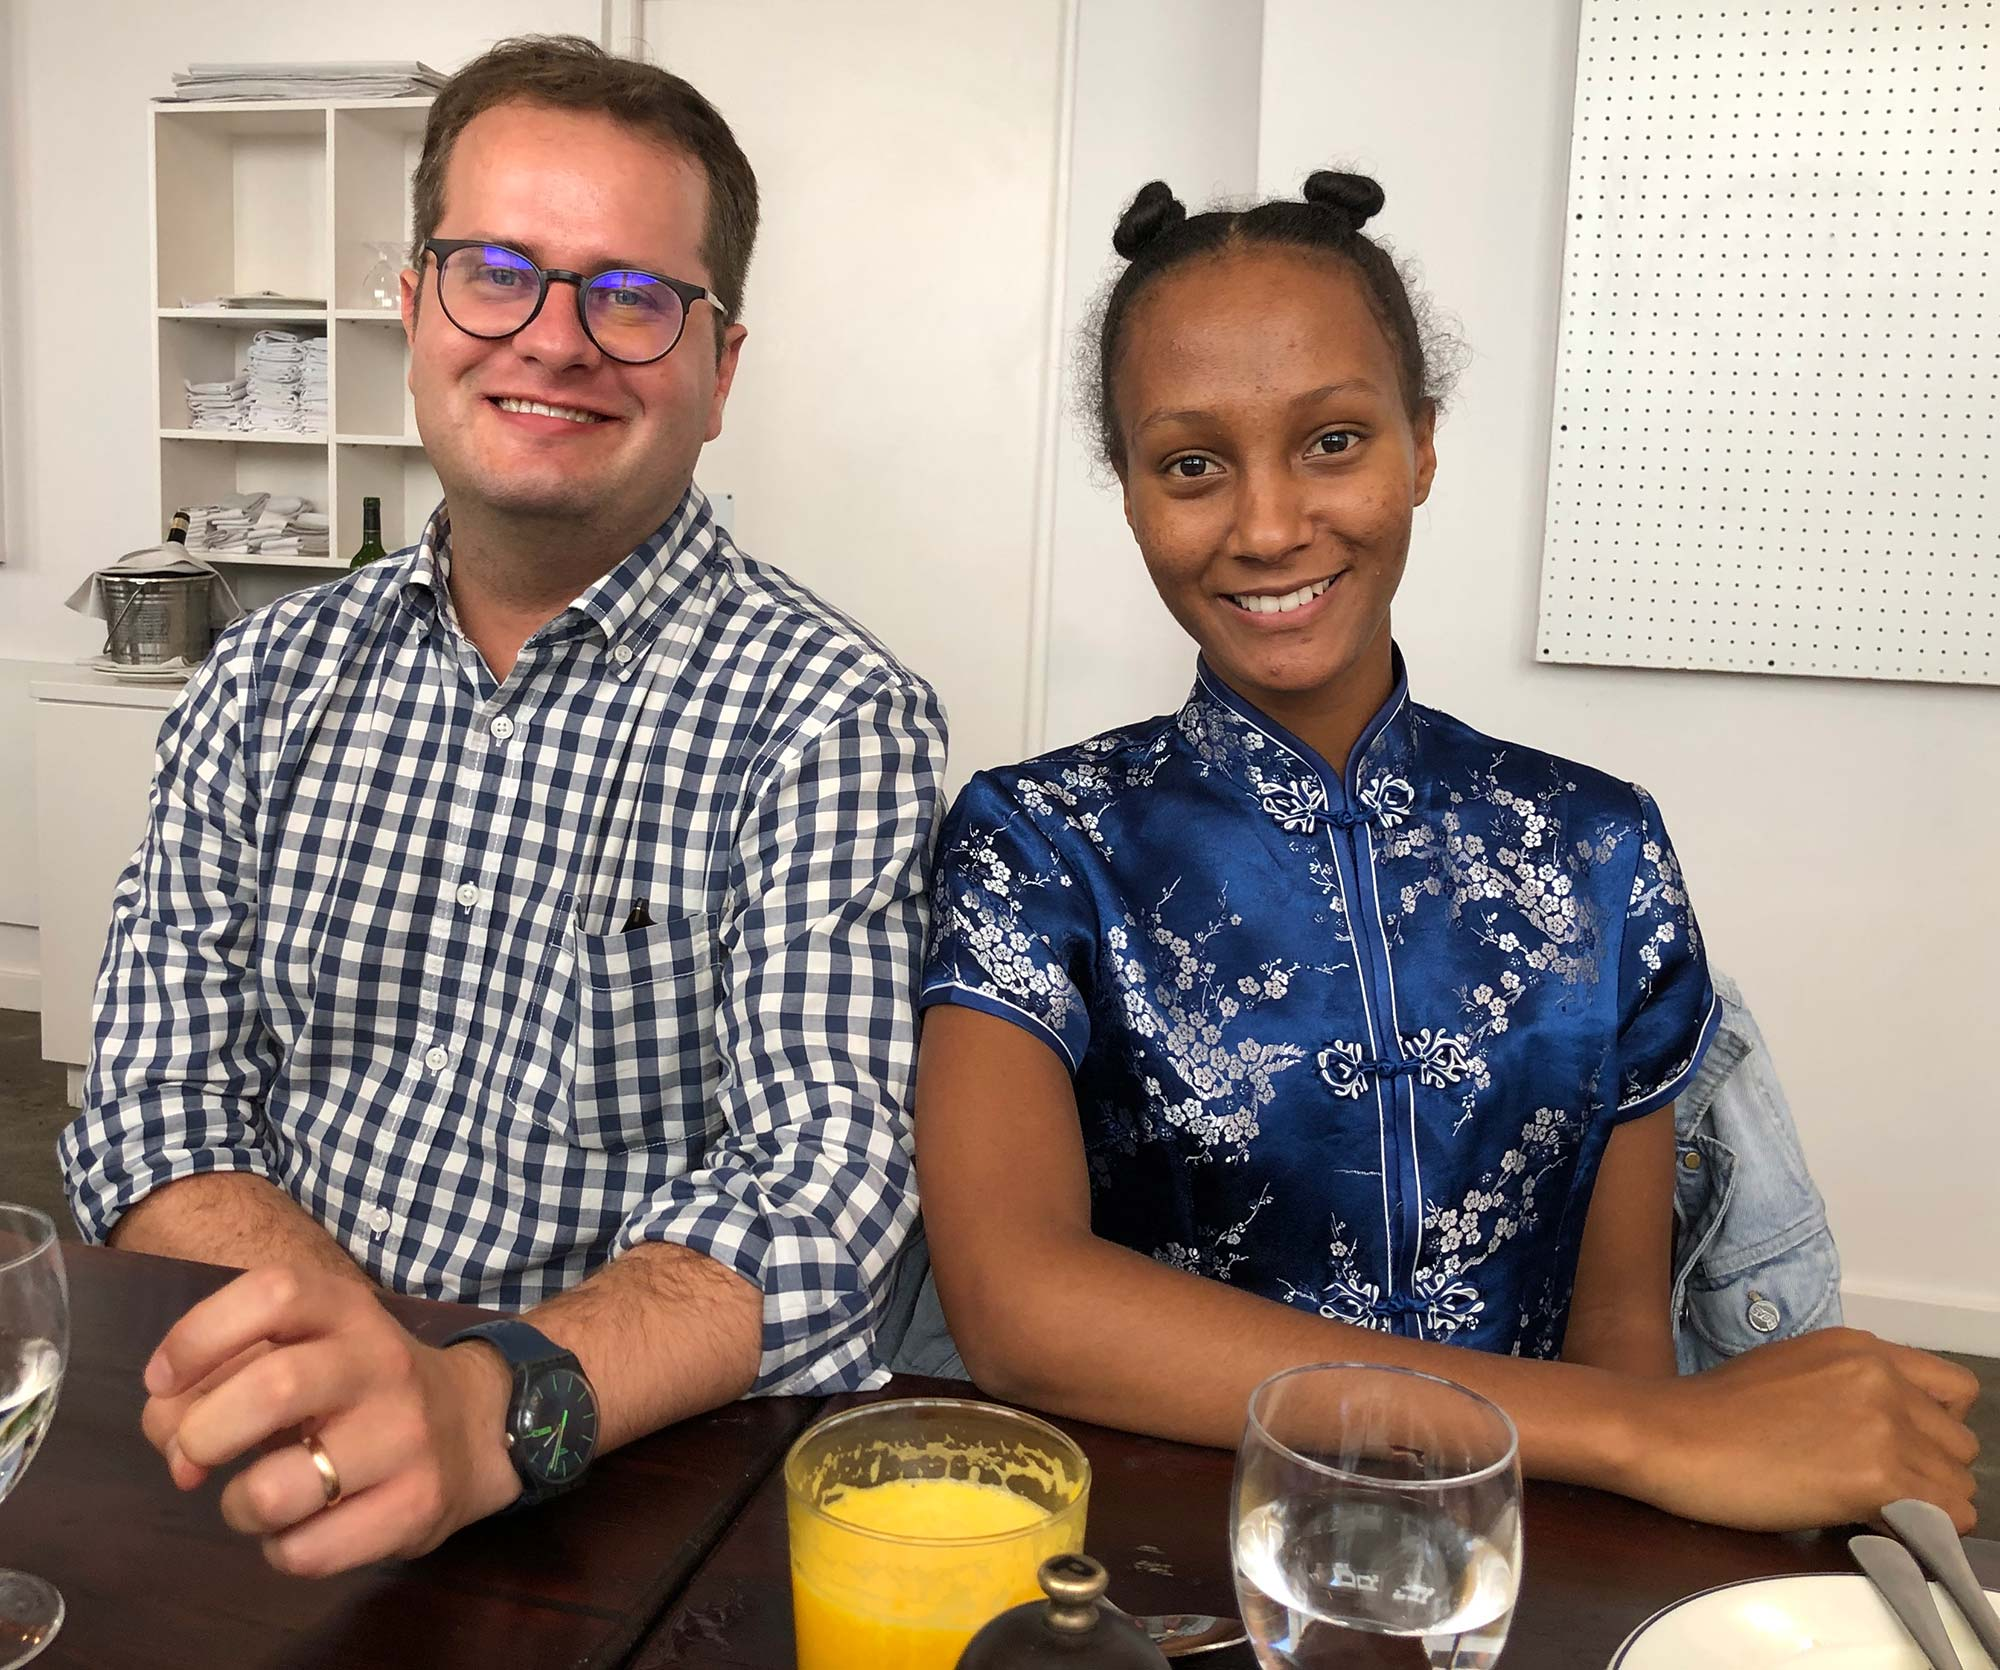 Celebrating Monica's birthday at La Tête, Cape Town, 30.01.2019. Johan and Alyssa.